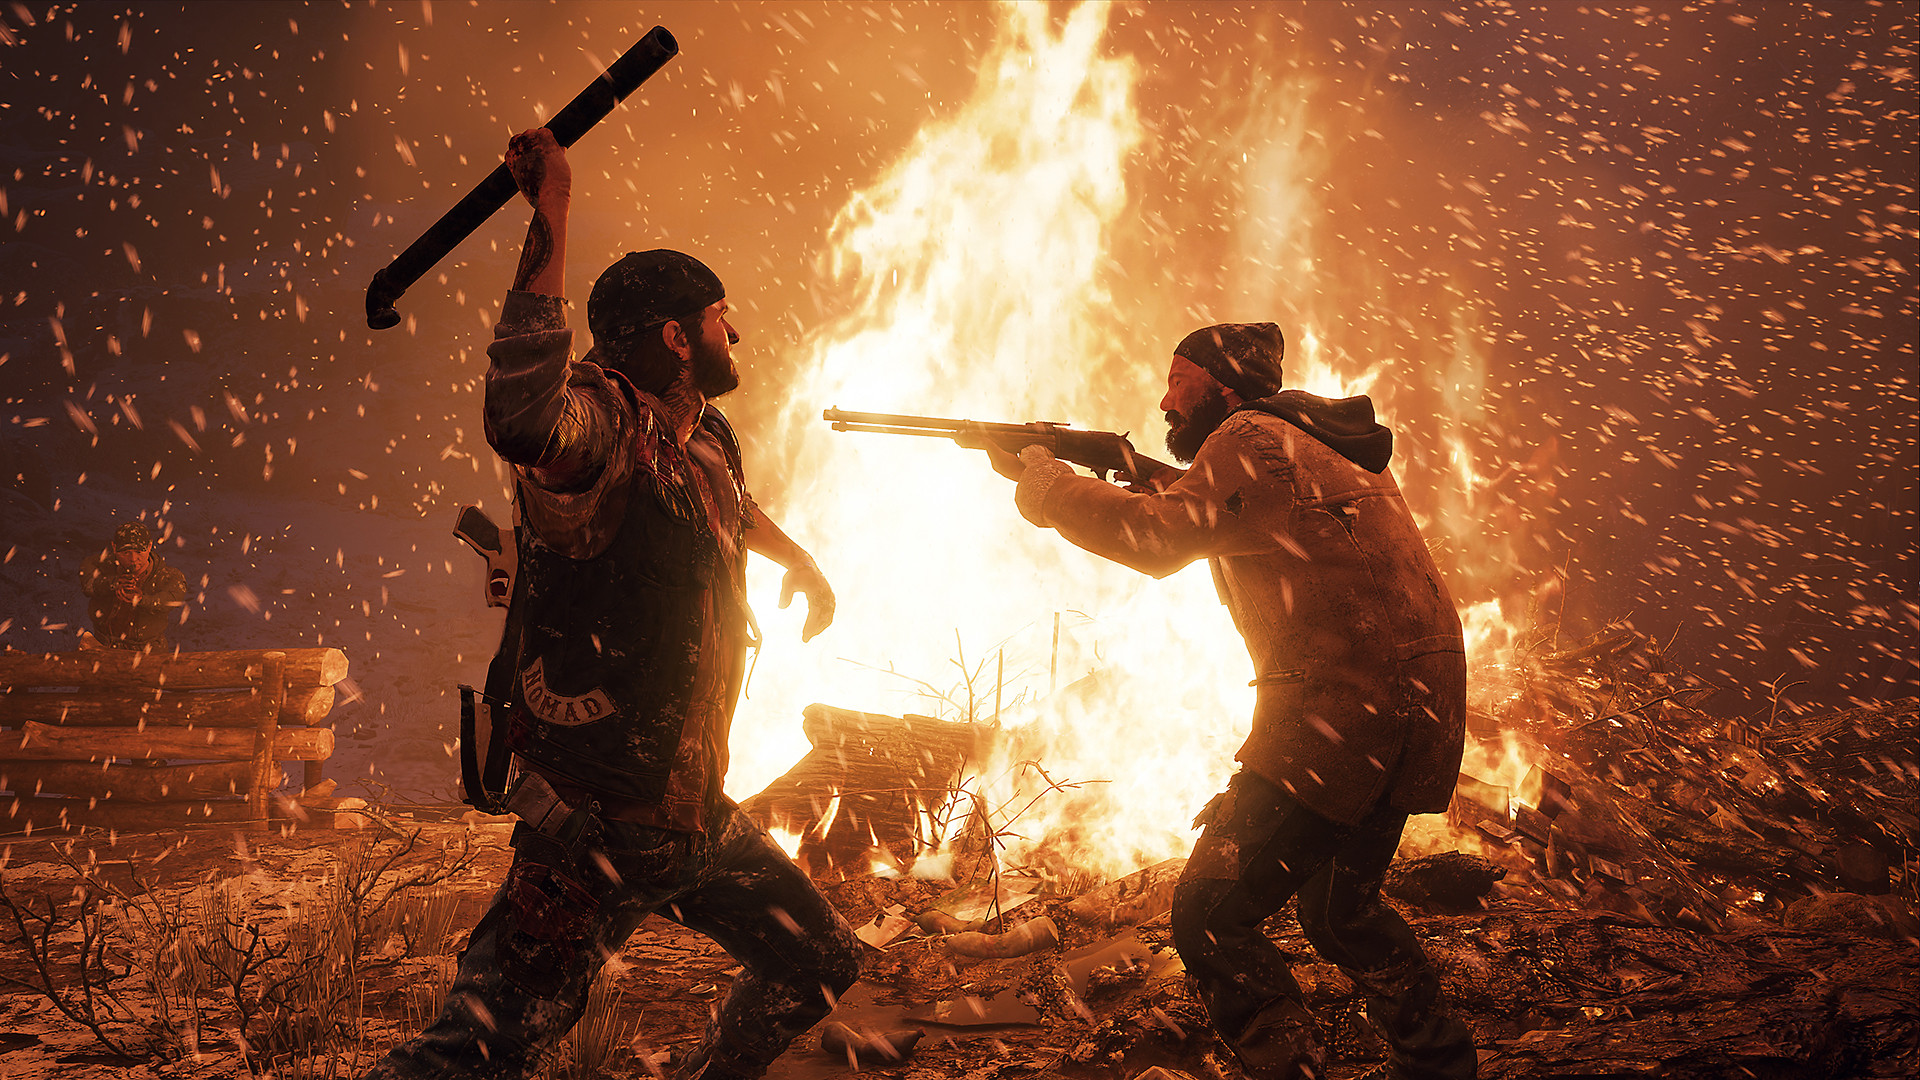 Days Gone Gameplay Screen 3 - Sandbox Combat